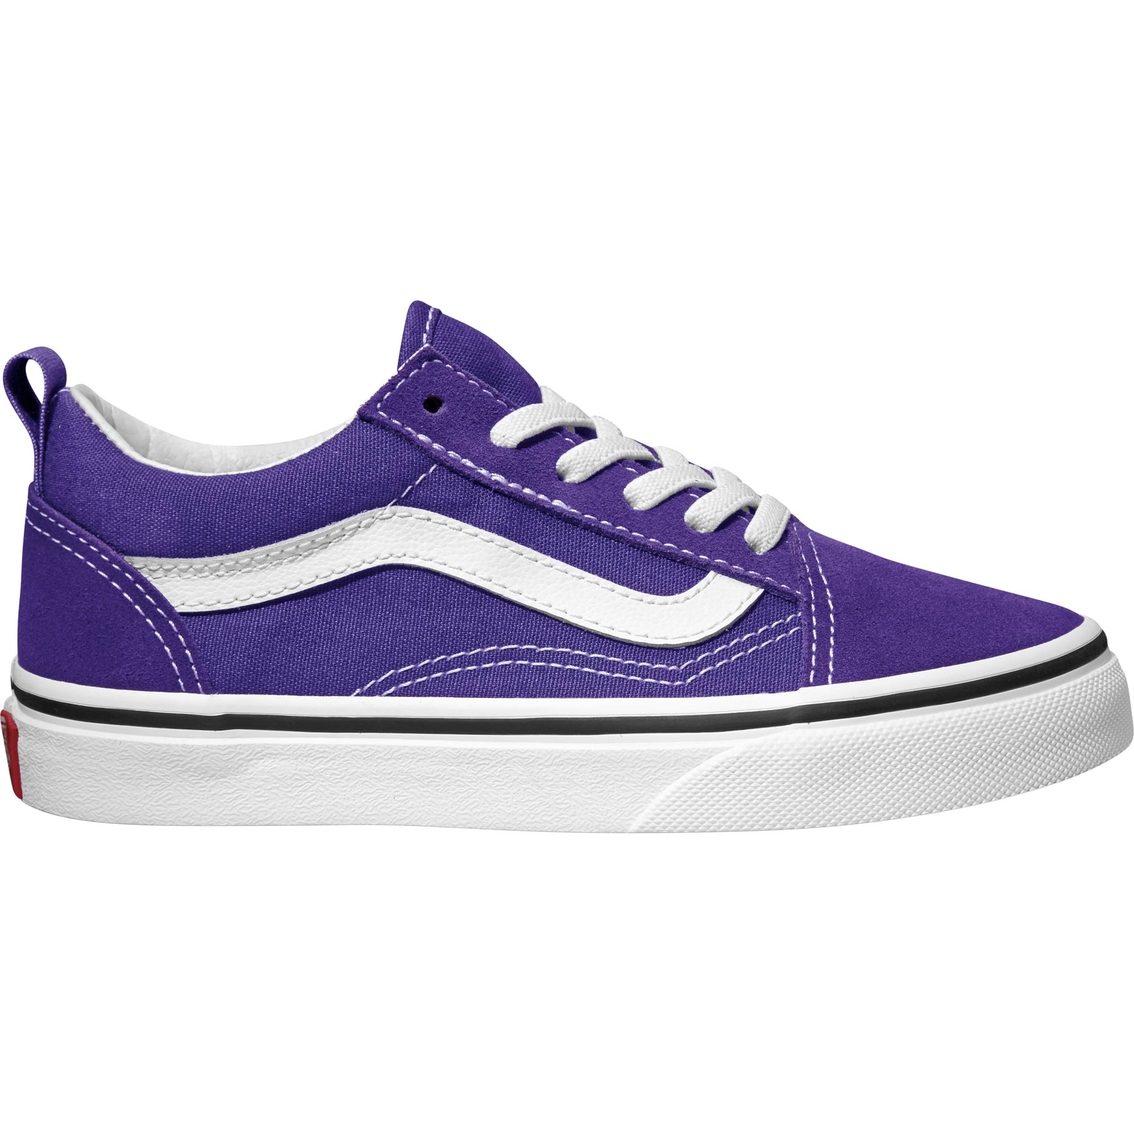 b2d7061619037 Vans Girls Old Skool Elastic Lace Shoes | Casual | Shoes | Shop The ...